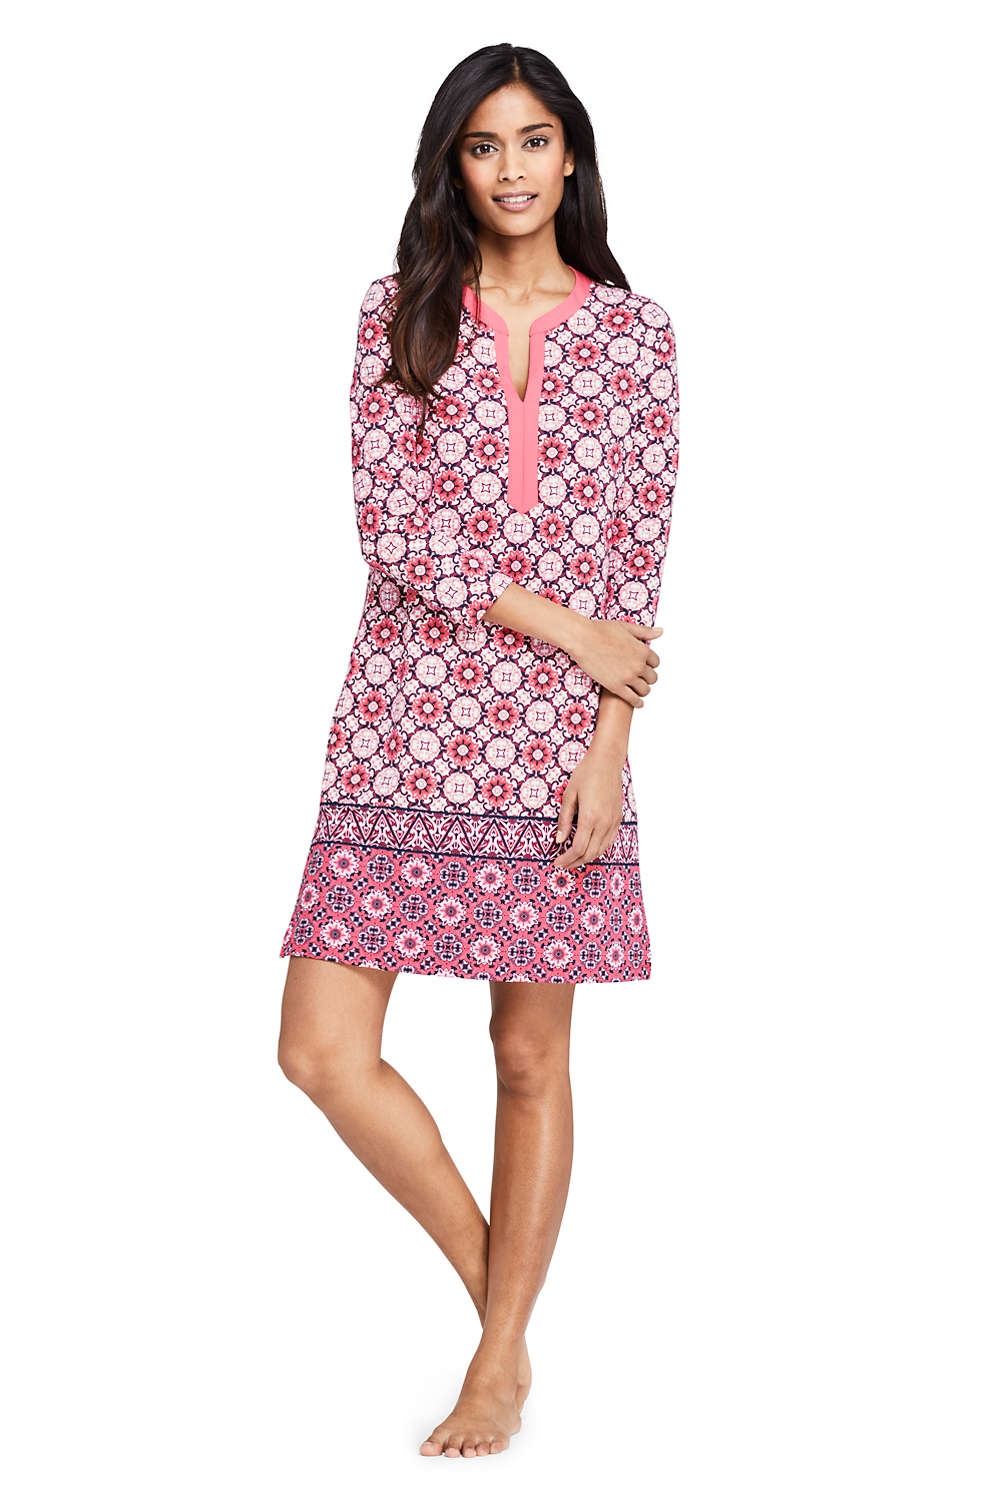 44f8122524 Women's Swim Cover-up Tunic Dress with UV Protection Print from Lands' End